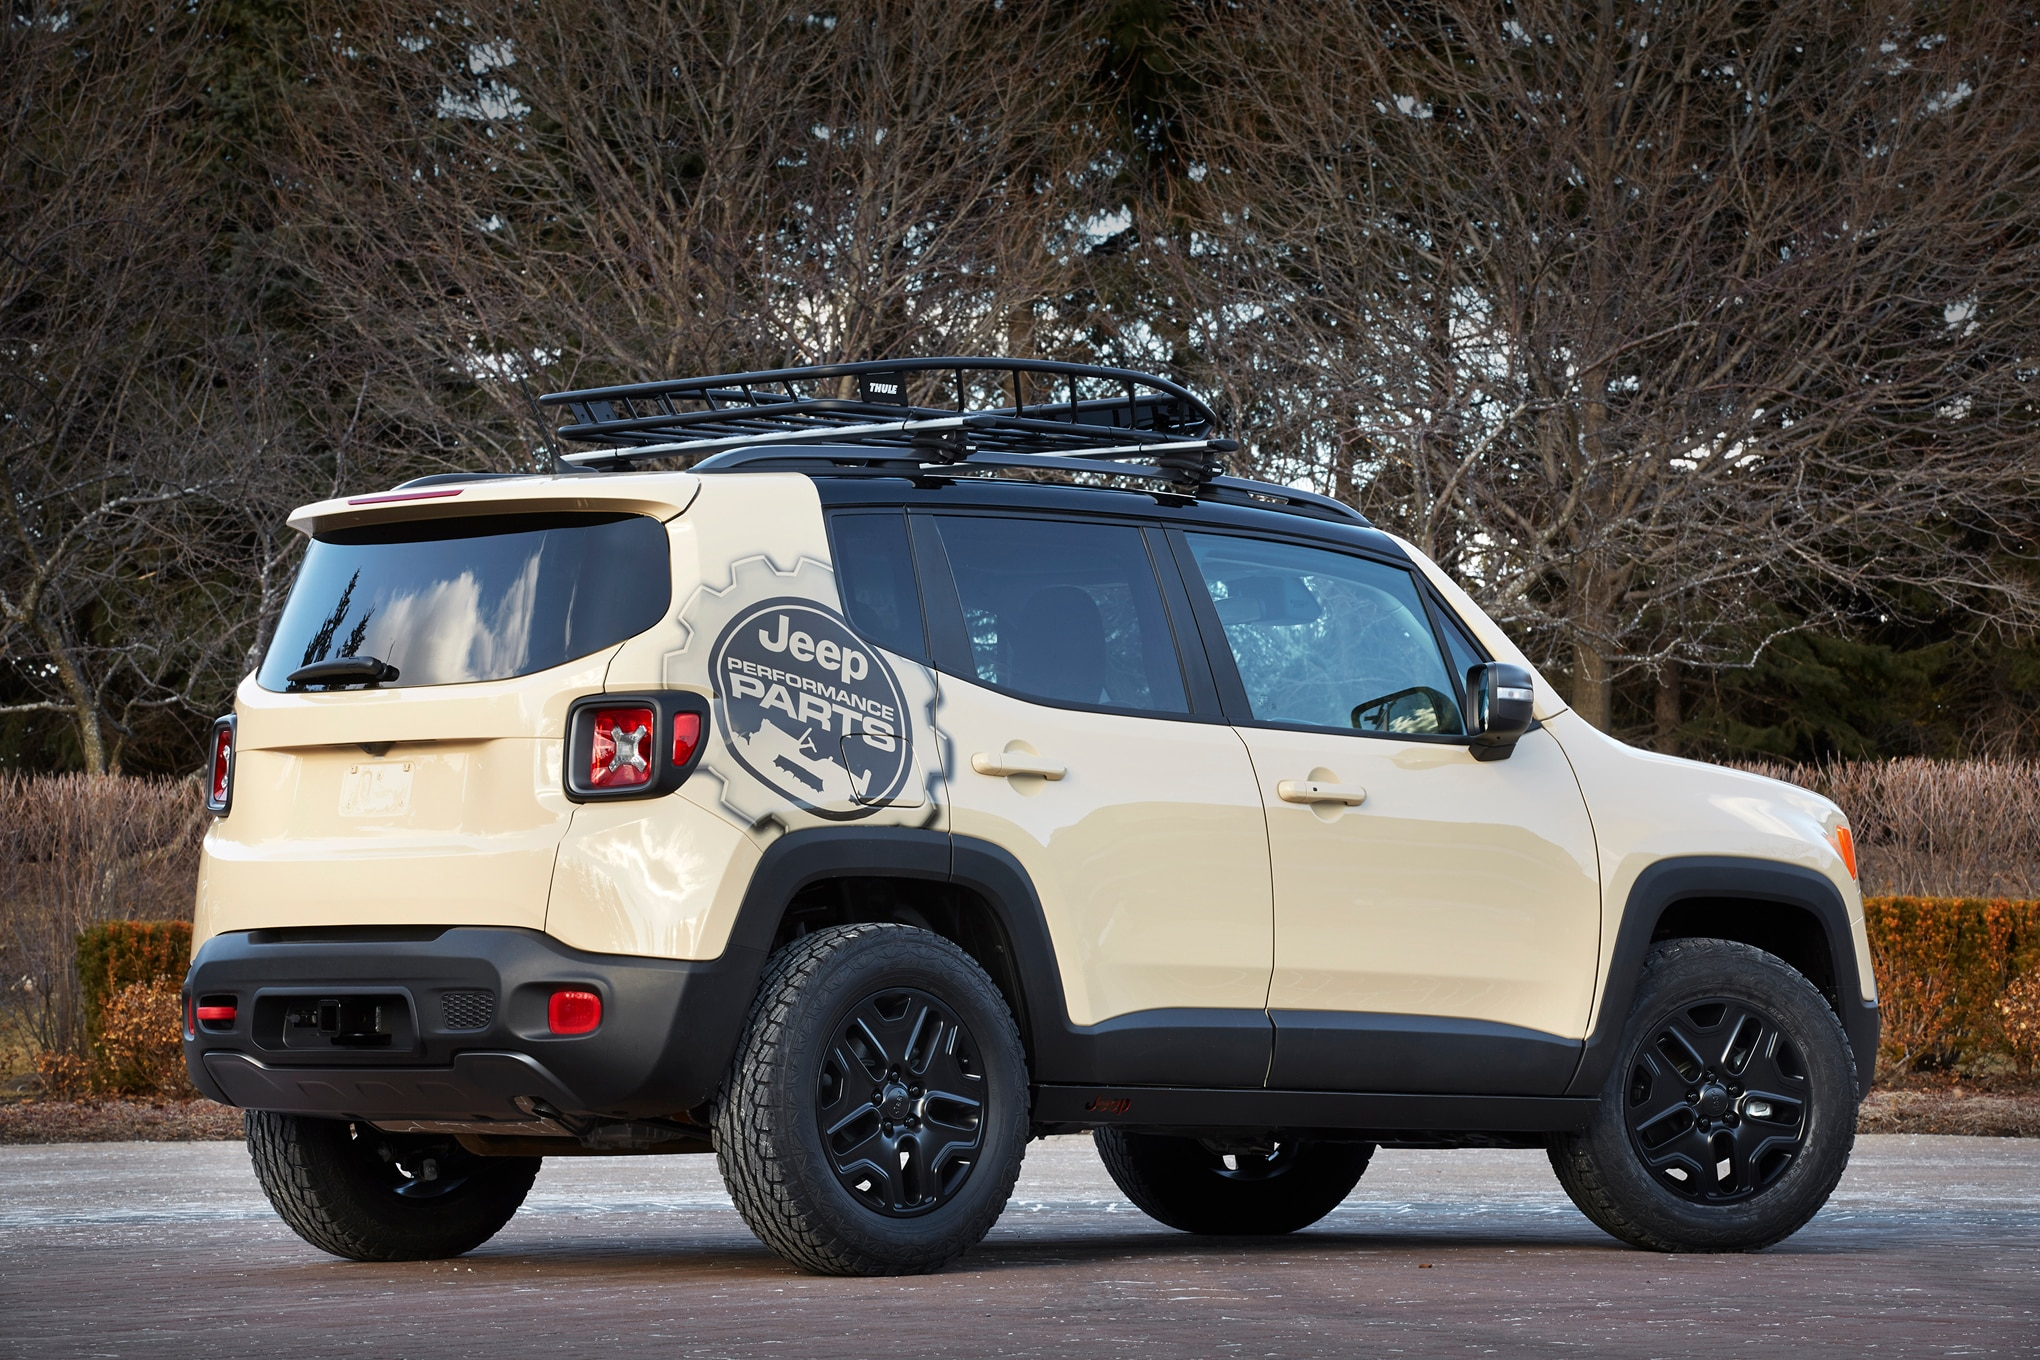 Jeep Renegade Trailhawk Lift >> Jeep Renegade Lift Kit 2015 | 2017 - 2018 Best Cars Reviews